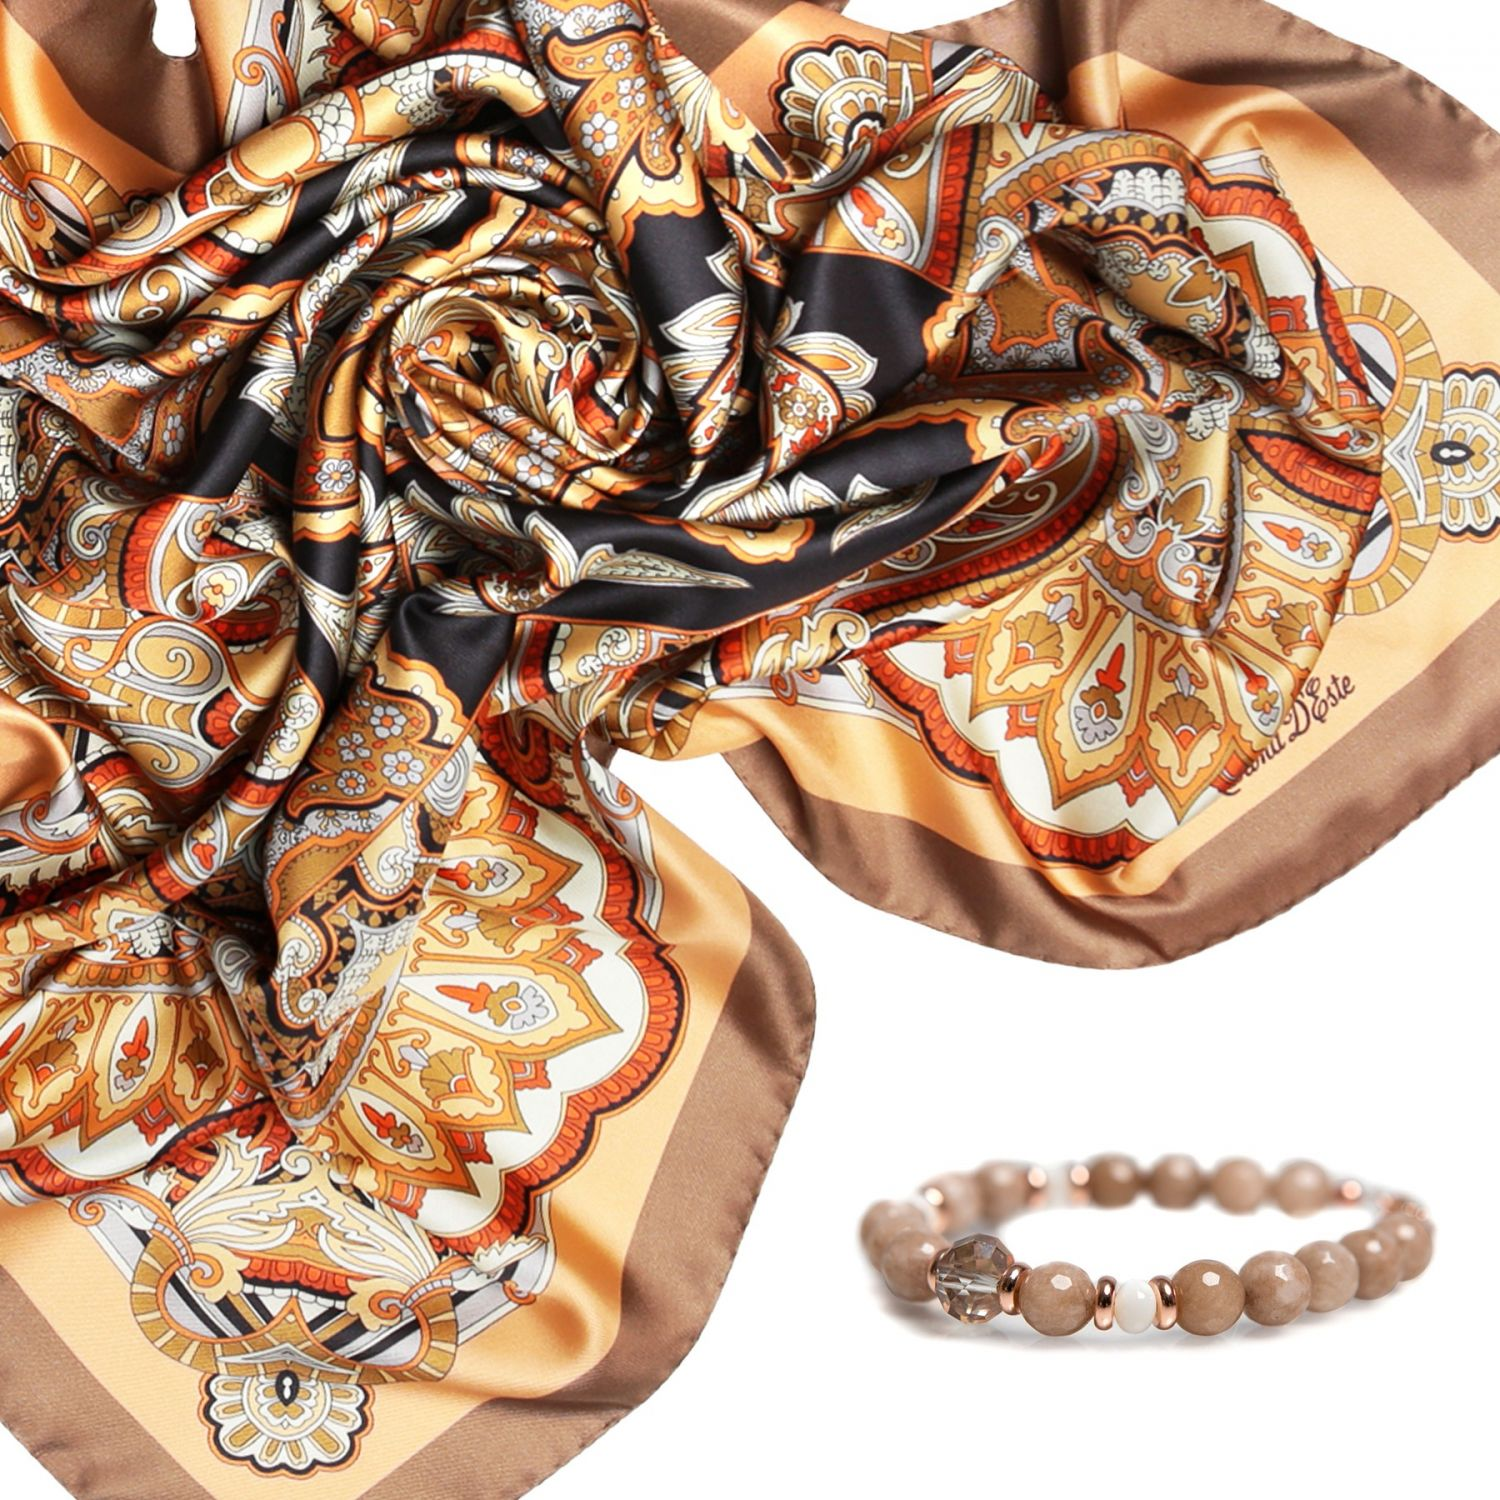 Gift: Silk scarf Carnaby Street and coffee agate bracelet